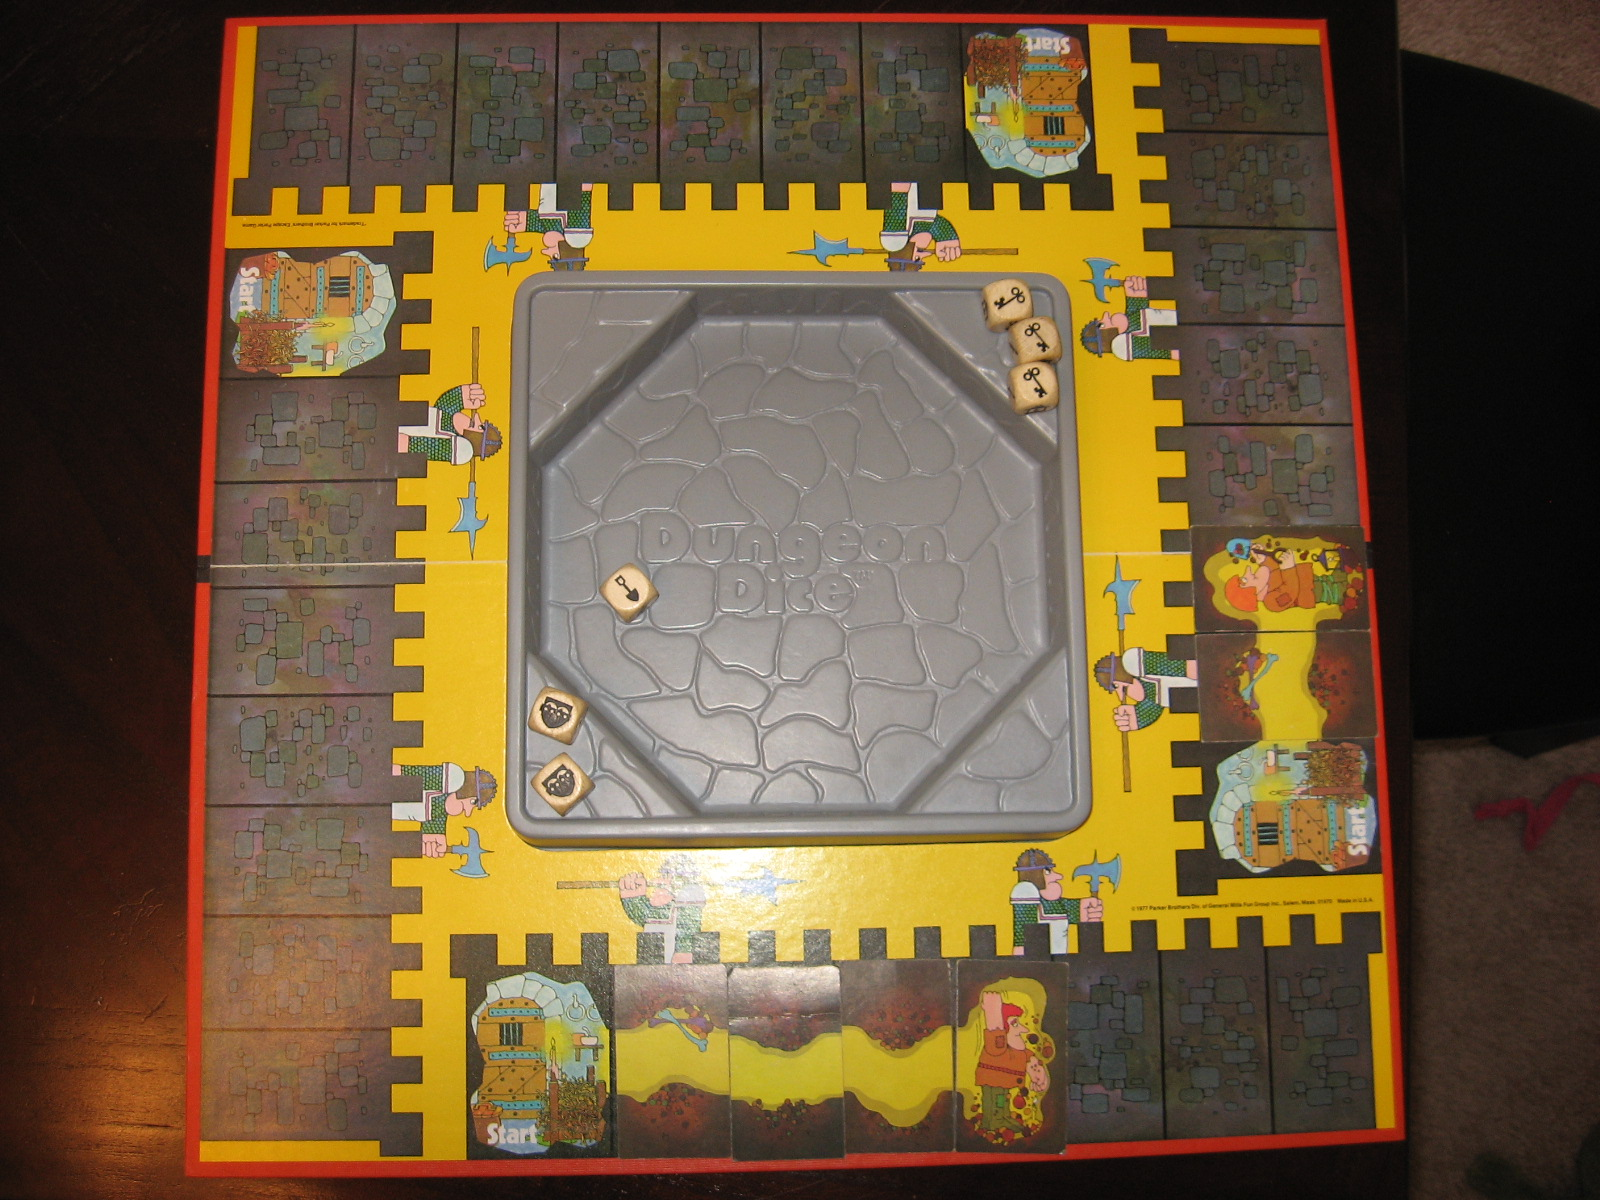 Dungeon dice a board game a day you play a prisoner locked in the dungeon of a castle your task is to dig yourself out through the walls of the dungeon you do this by rolling a set of solutioingenieria Gallery